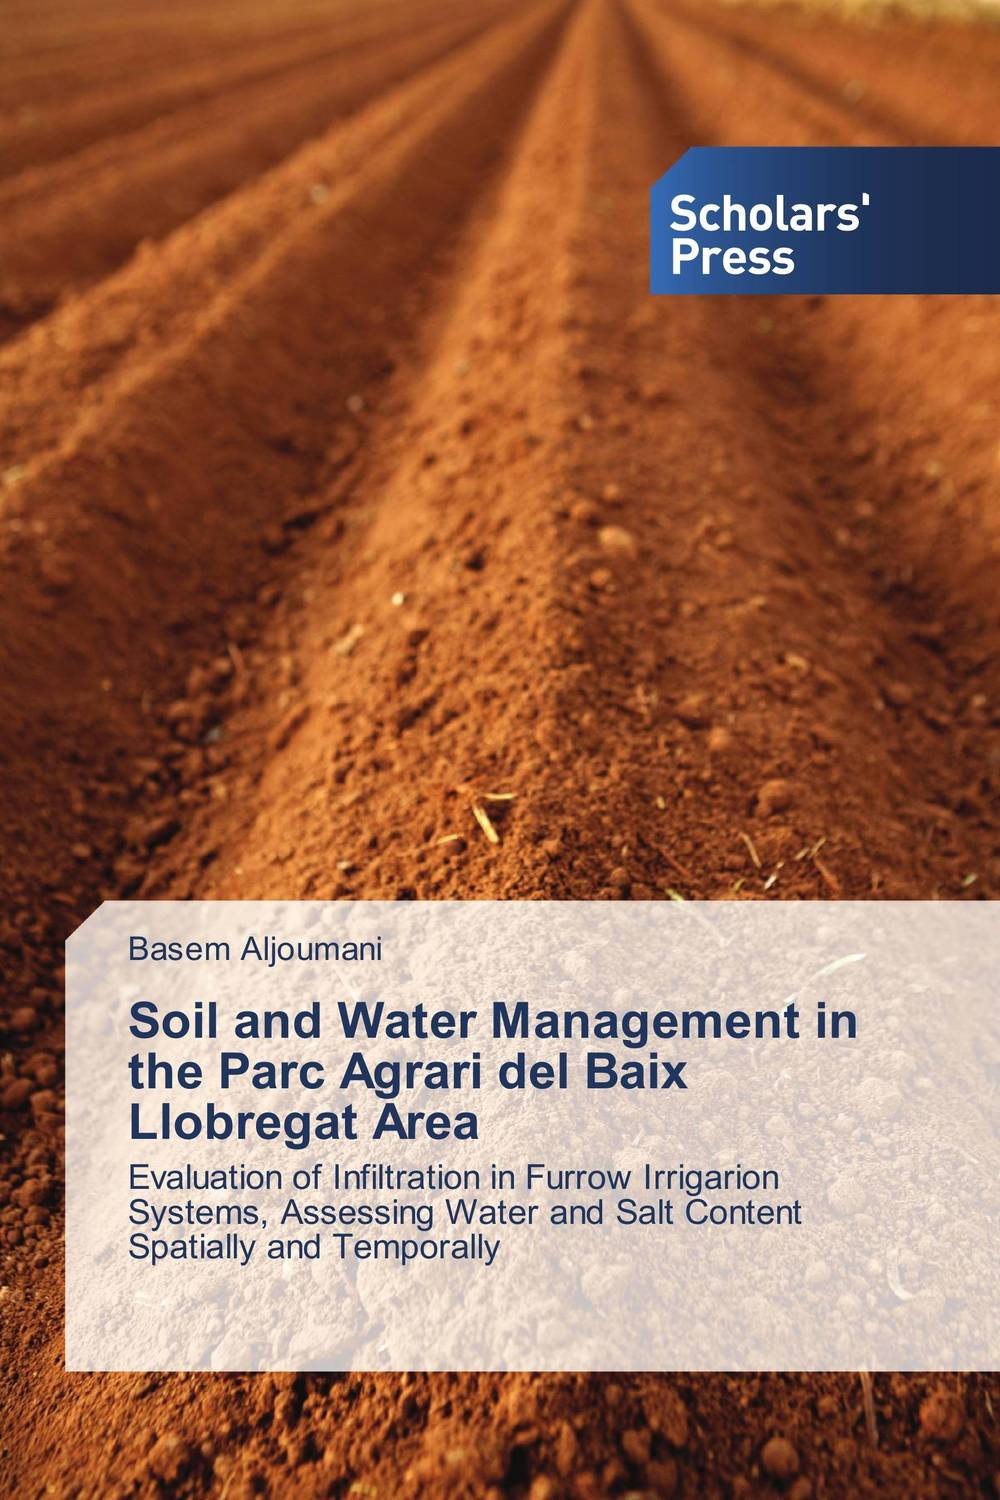 Soil and Water Management in the Parc Agrari del Baix Llobregat Area thermo operated water valves can be used in food processing equipments biomass boilers and hydraulic systems